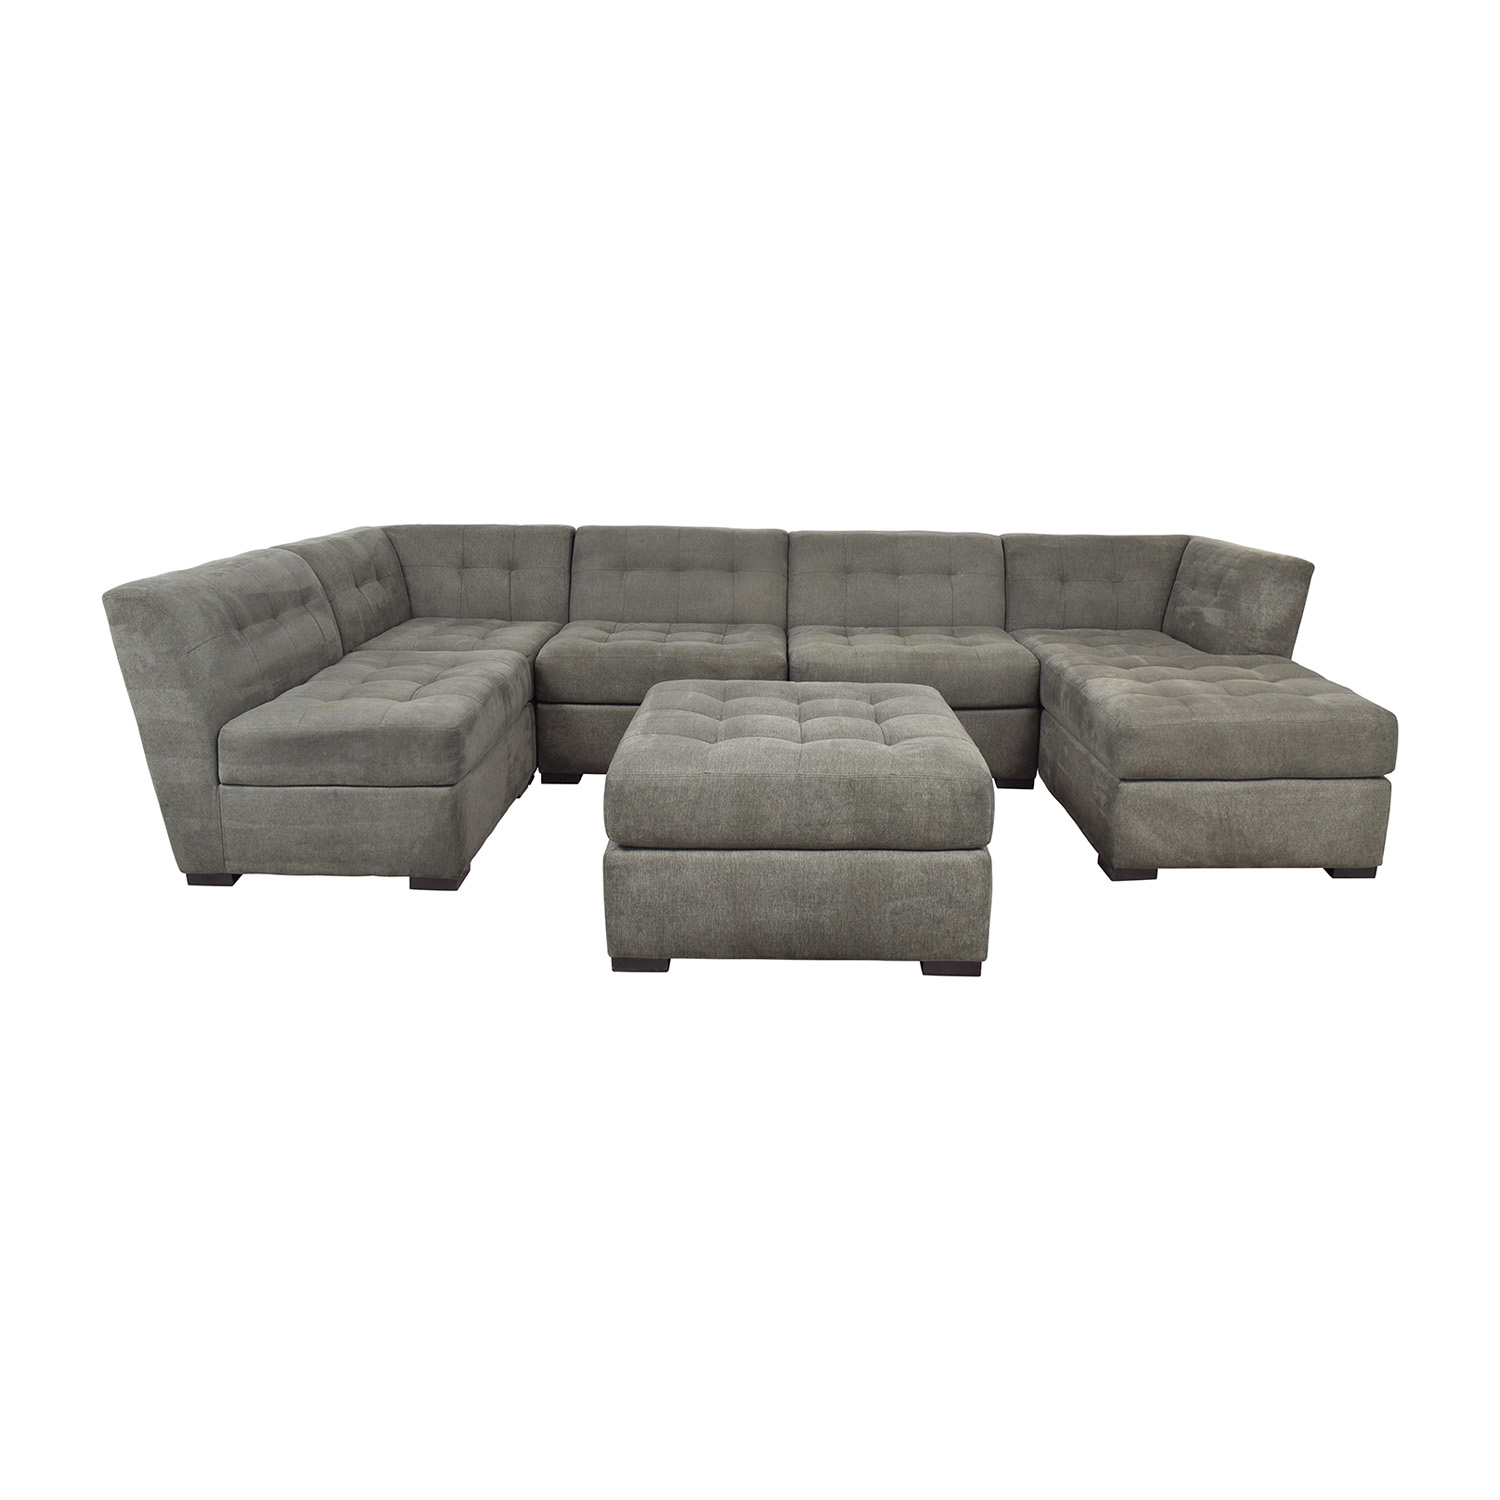 Macy's Macy's Roxanne II Modular Sectional Sofa with Chaise & Ottoman discount